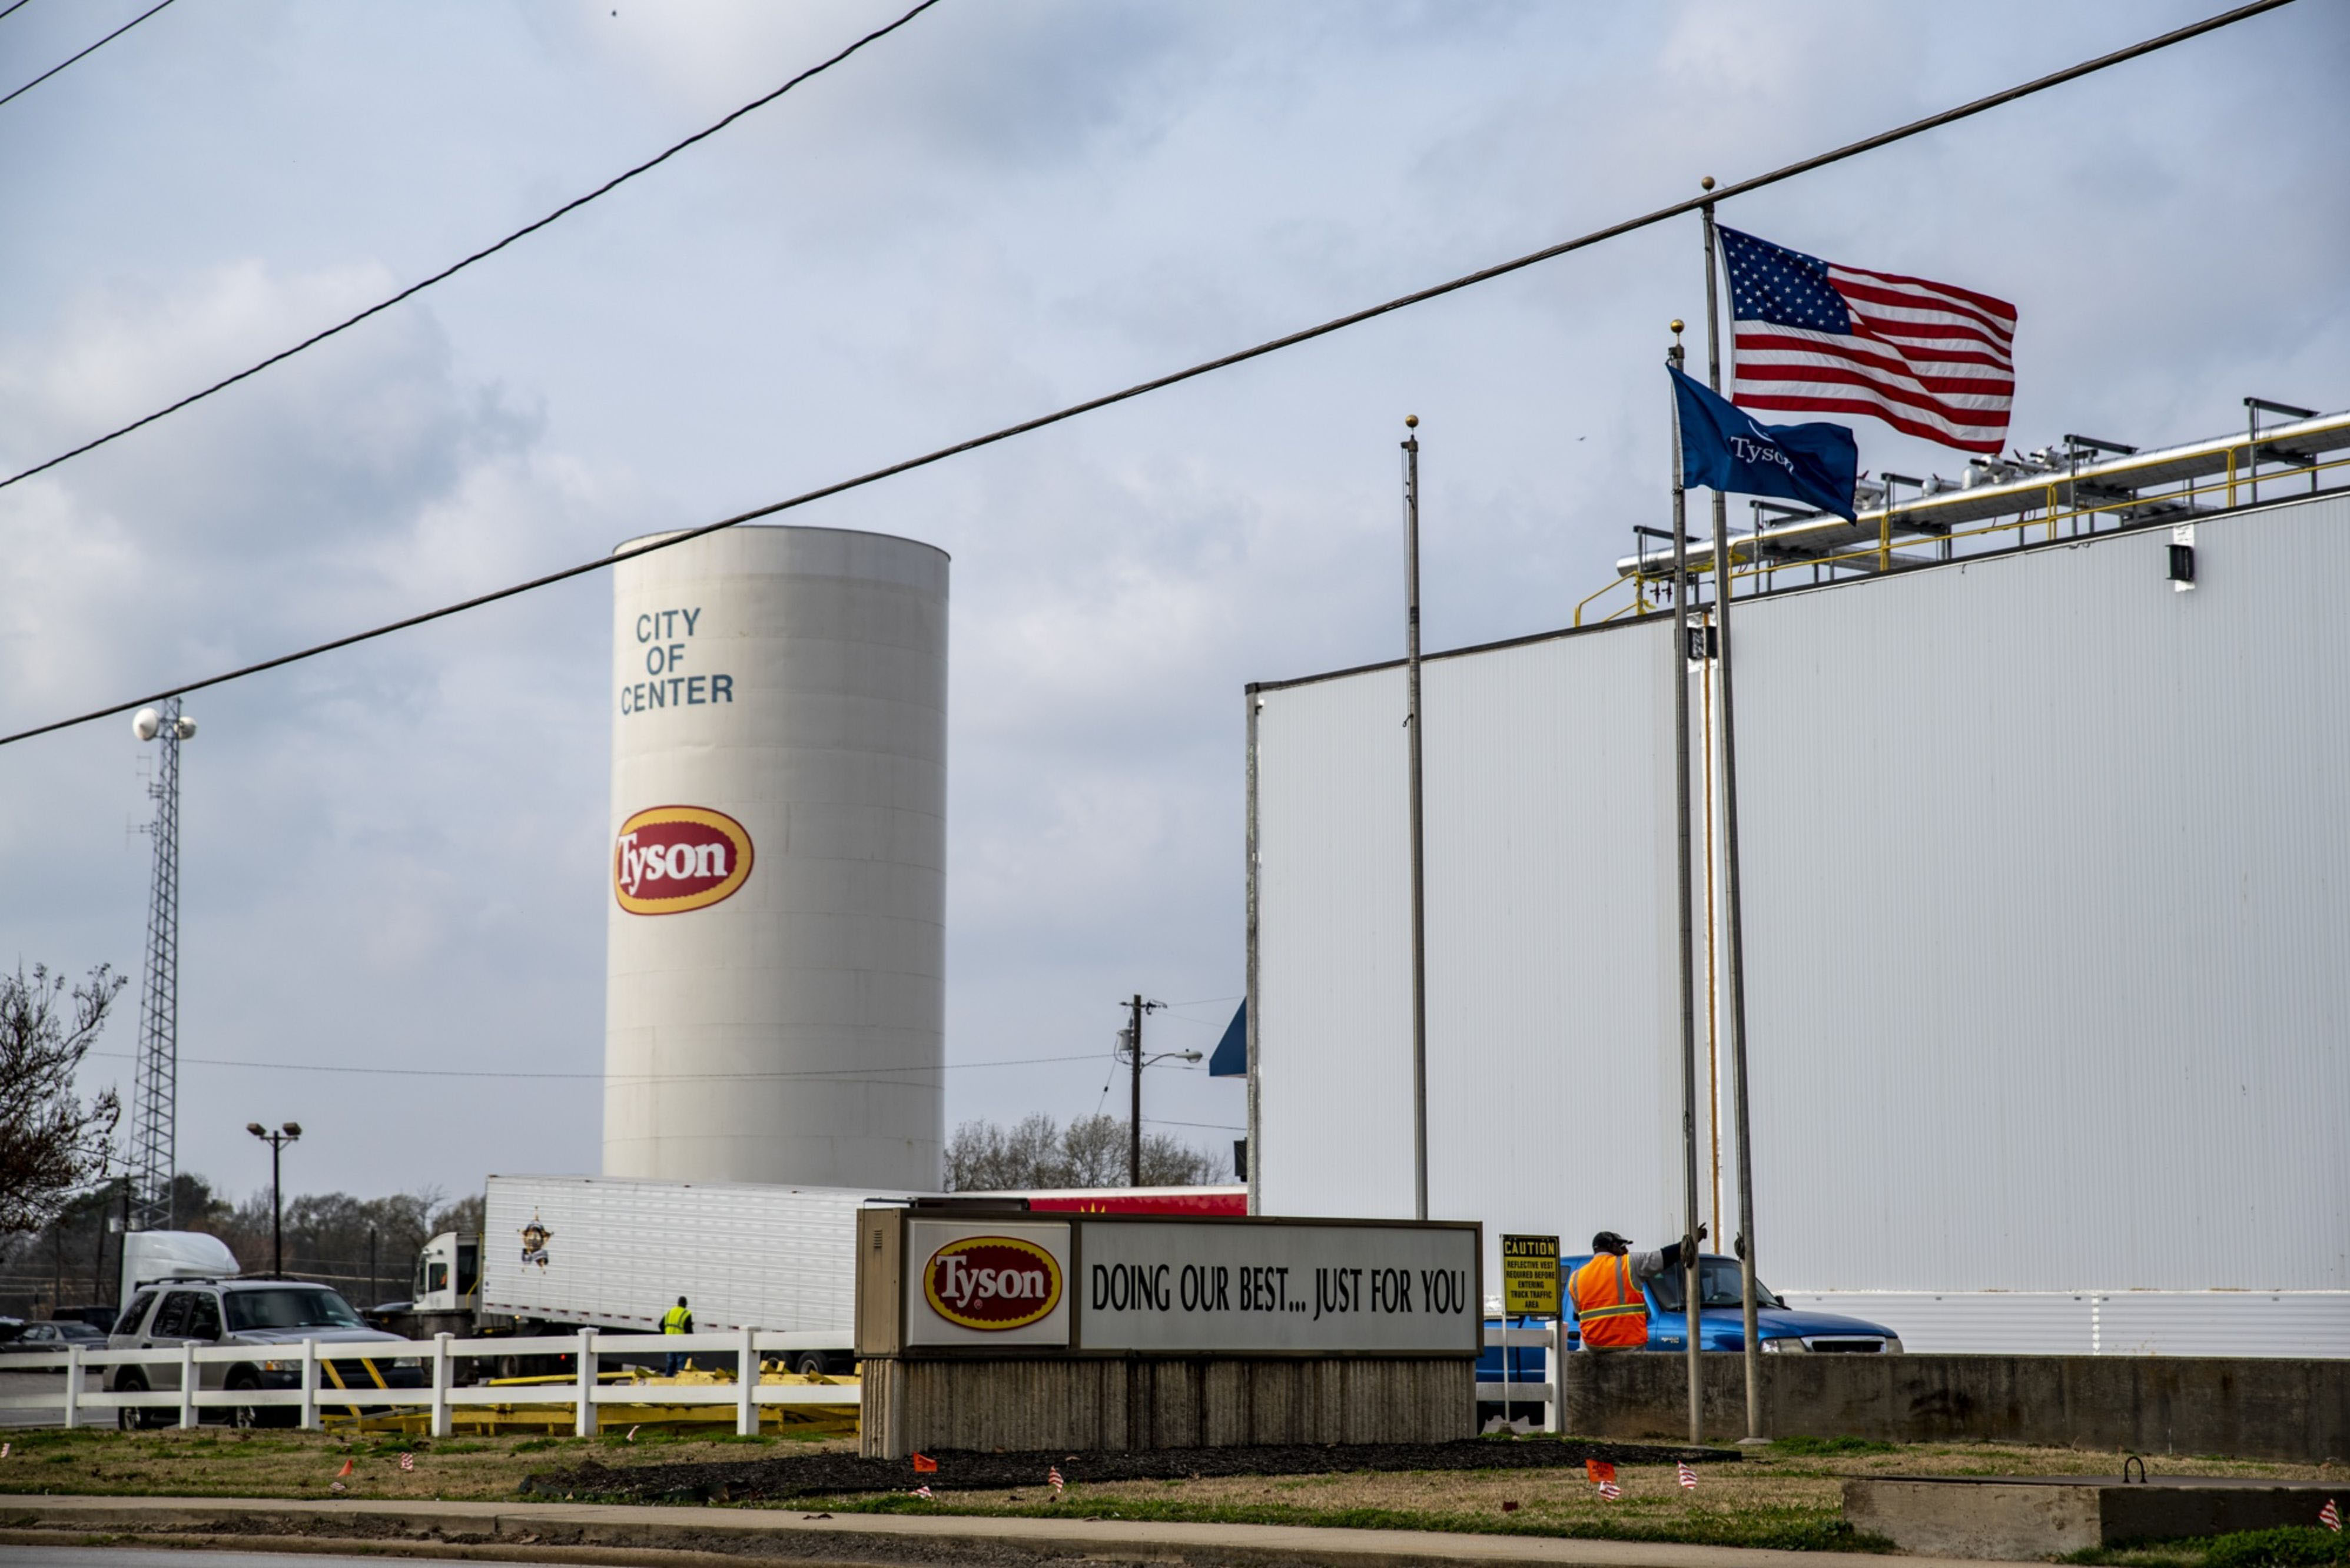 A tower is seen at Tyson Food Inc. in Center, Texas on Dec. 9, 2019. MUST CREDIT: Bloomberg photo by Sergio Flores.